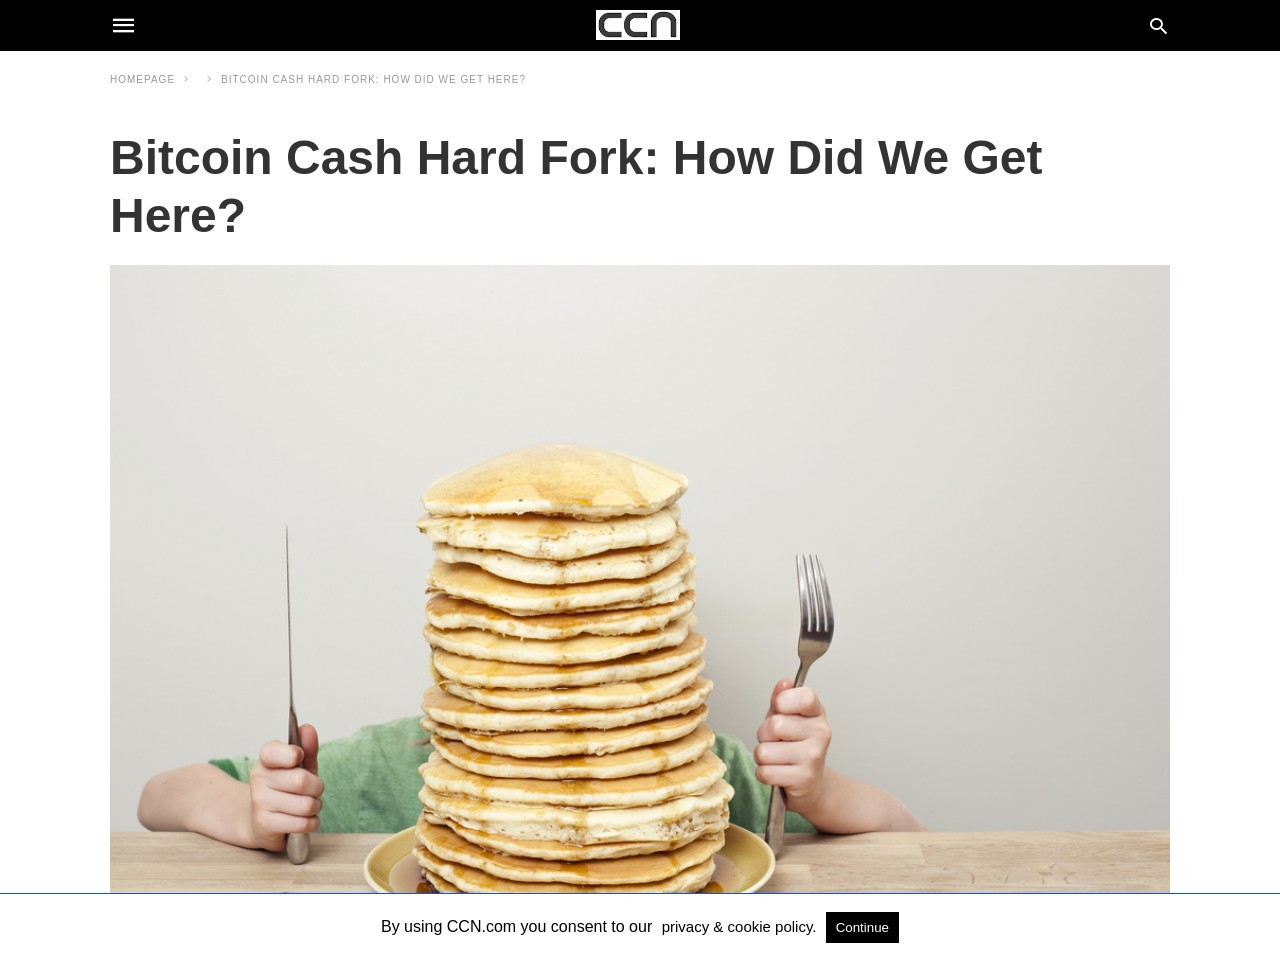 Bitcoin Cash Hard Fork: How Did We Get Here?